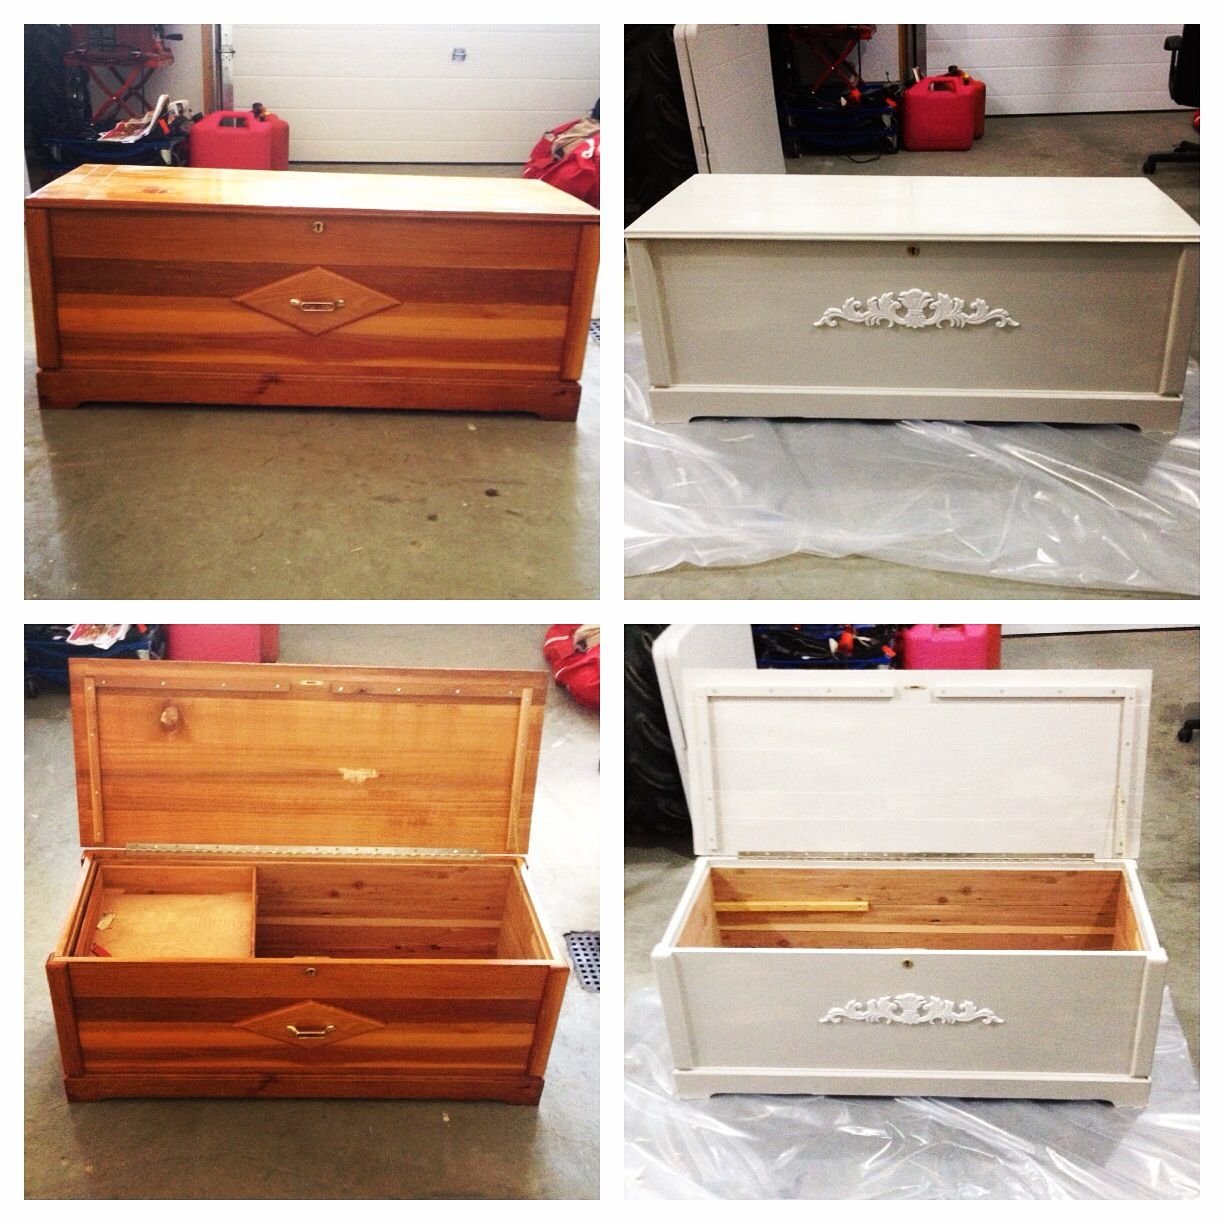 #repurpose #upcycle #restore Cedar Chest I Found At The Restore For $40.